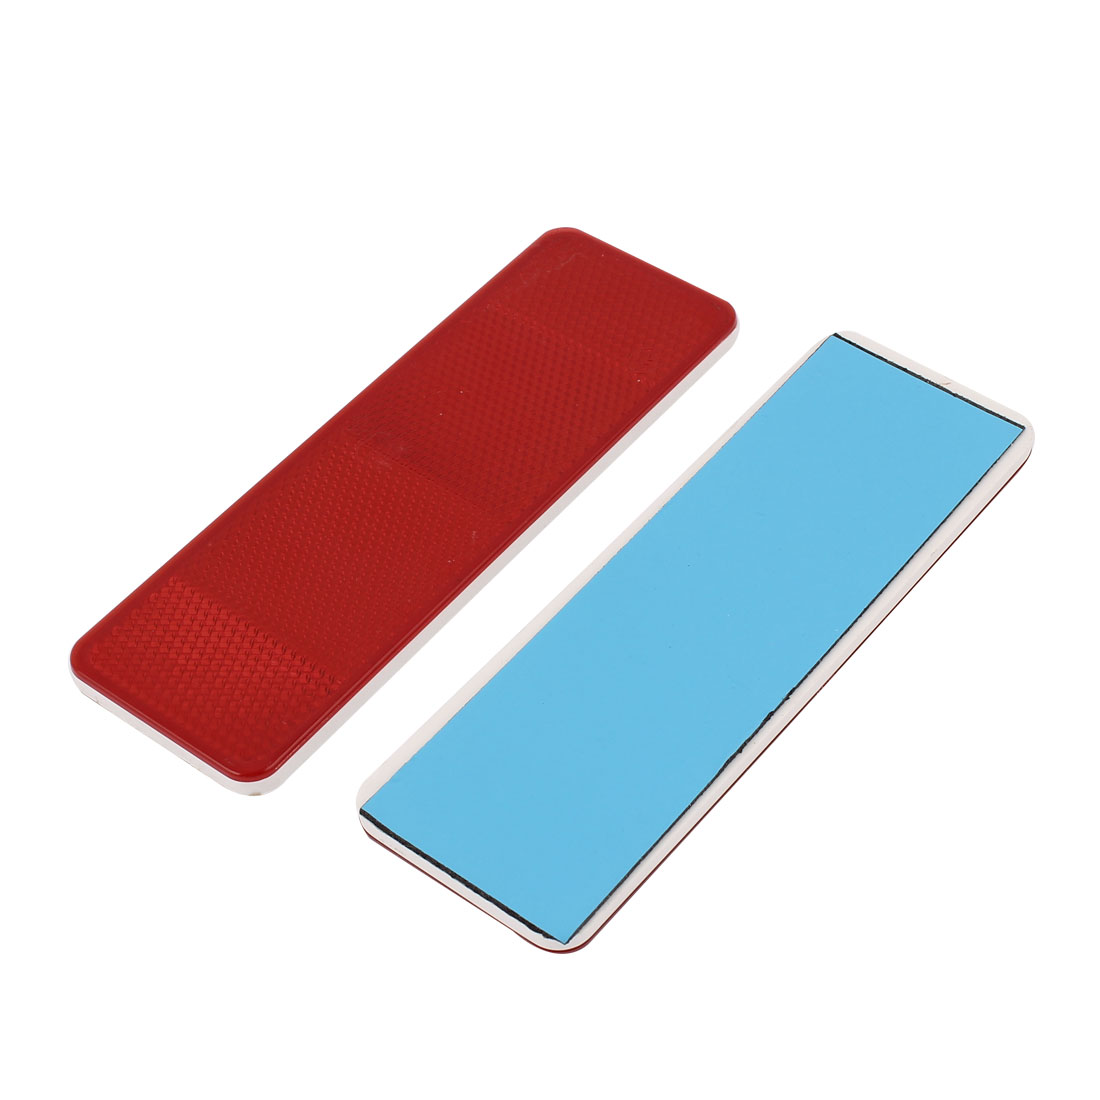 2Pcs Red Plastic Reflective Warning Plate Stickers For Car Safety